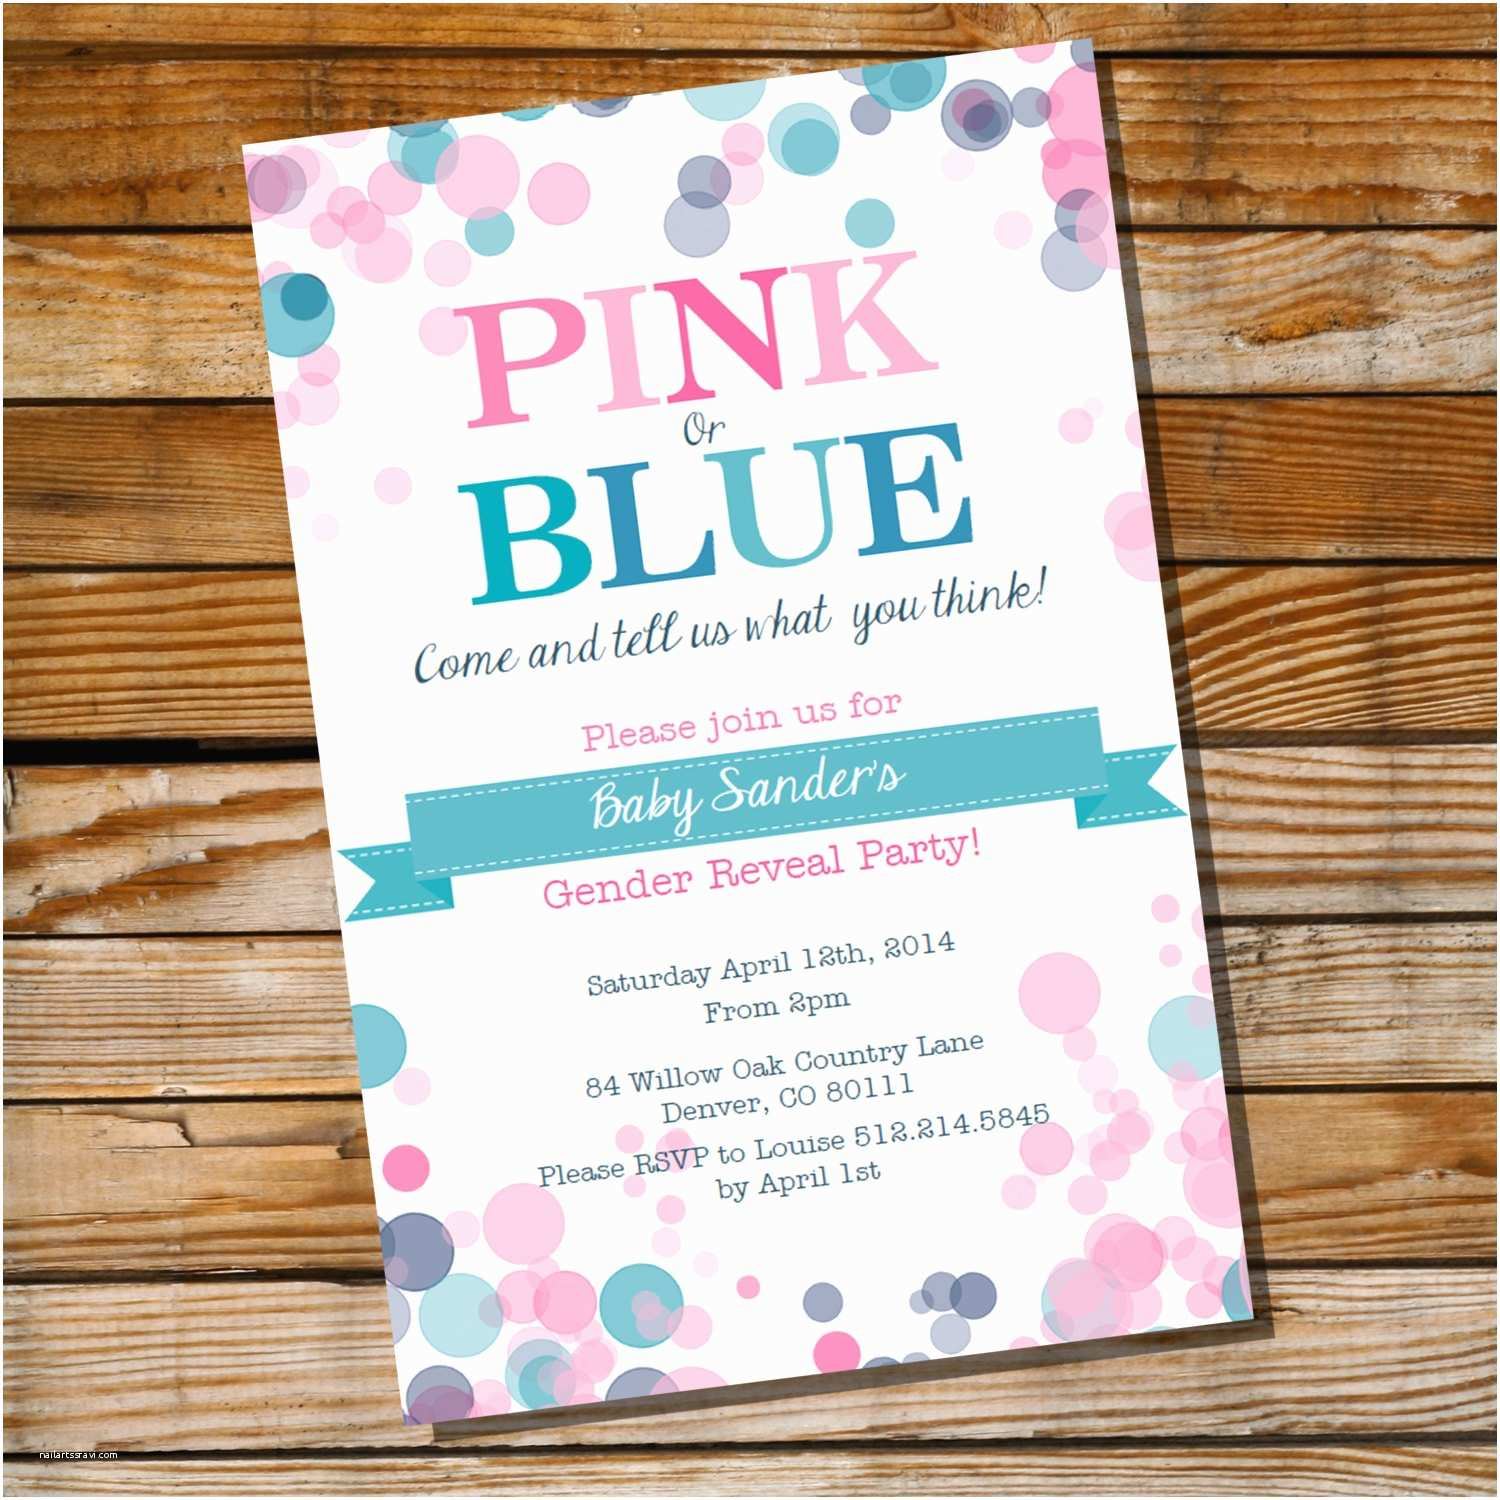 Gender Reveal Party Invitations Gender Reveal Party Invitation Pink or Blue Instantly